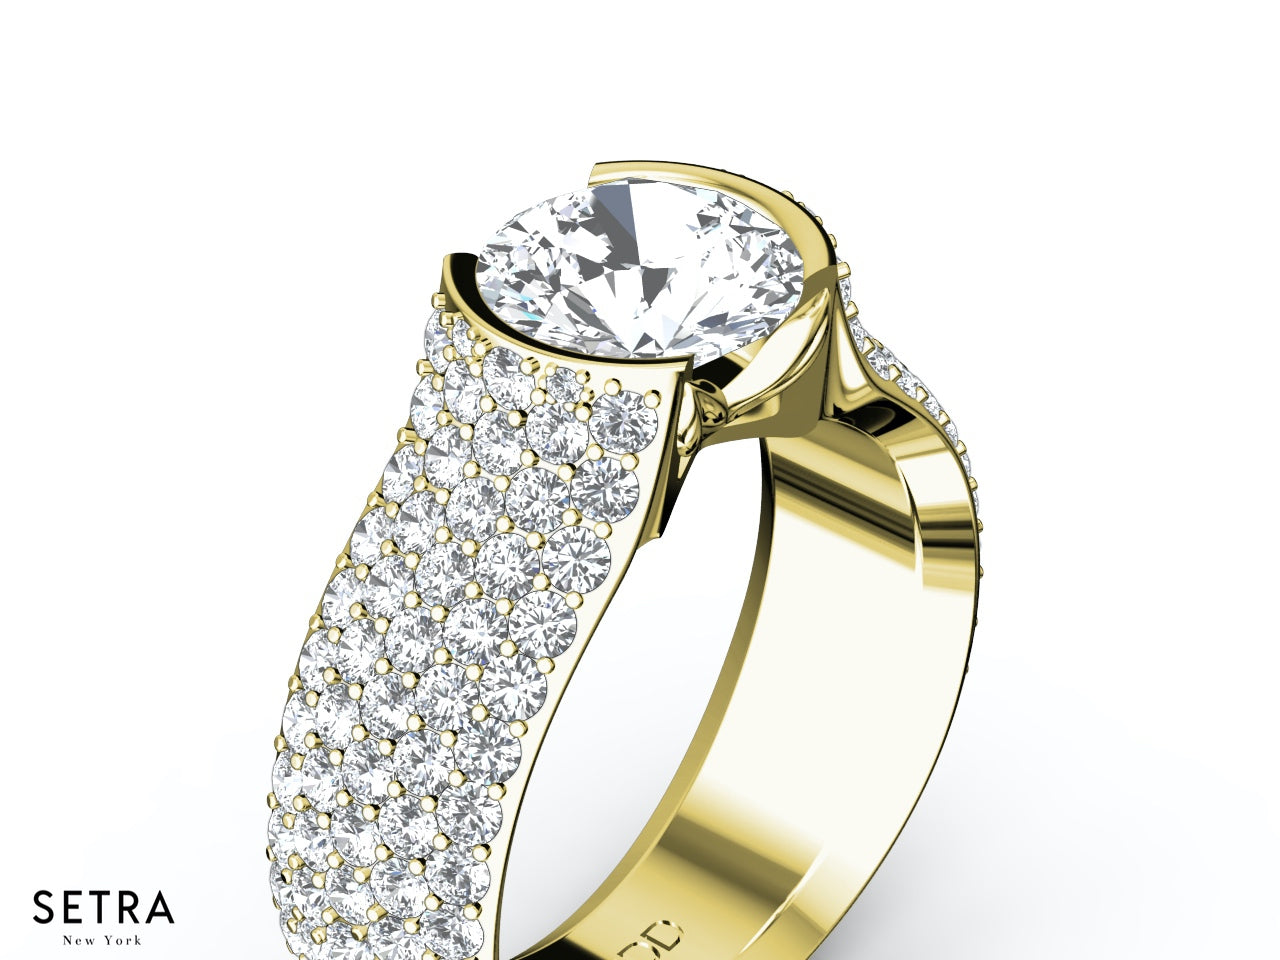 meenaz buy online american ring girls silver diamond india at rings jewellery amazon dp dimond and low women cz in for prices